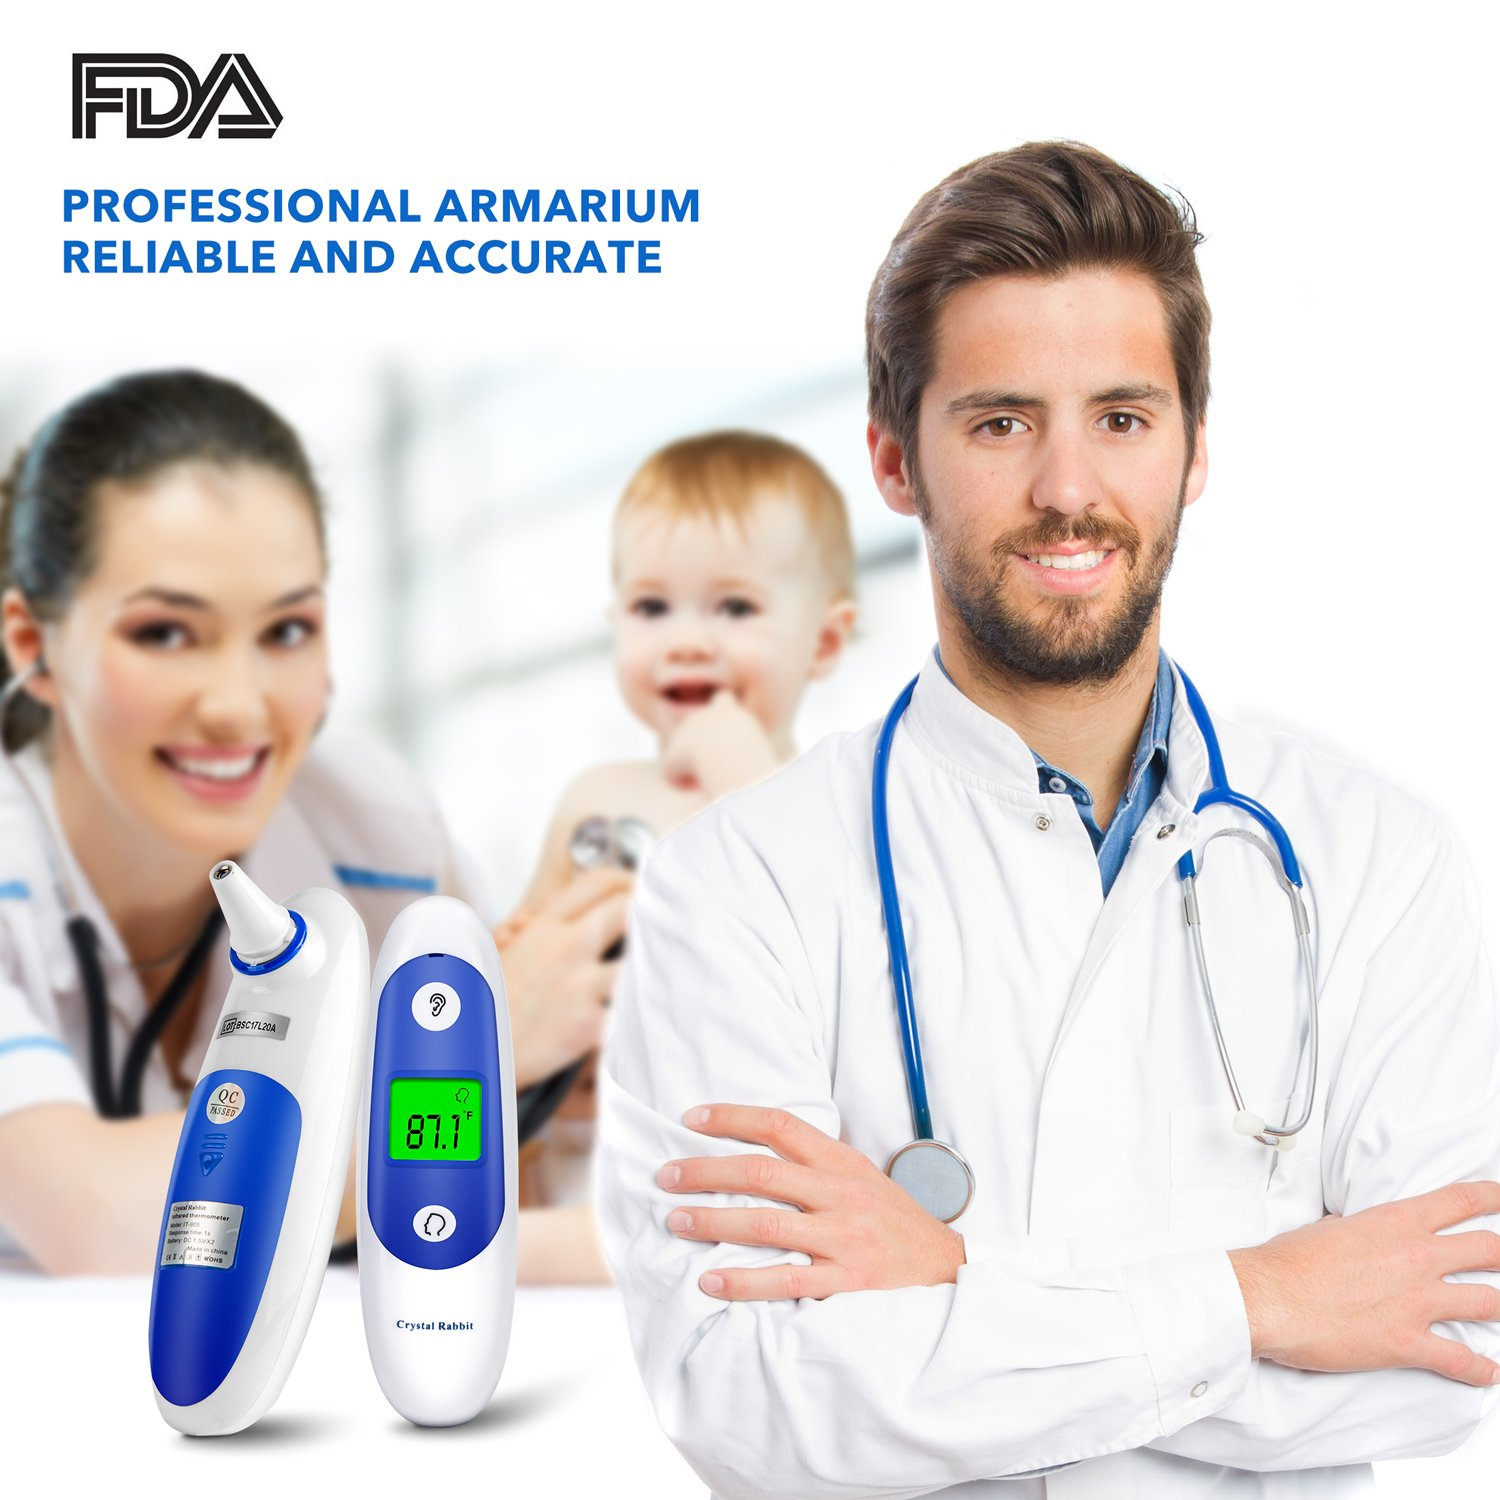 Medical Forehead and Ear Thermometer, Crystal Rabbit Infrared Digital Thermometer Suitable for Baby, Infant, Toddler and Adults with FDA and CE Approved by Crystal Rabbit (Image #6)